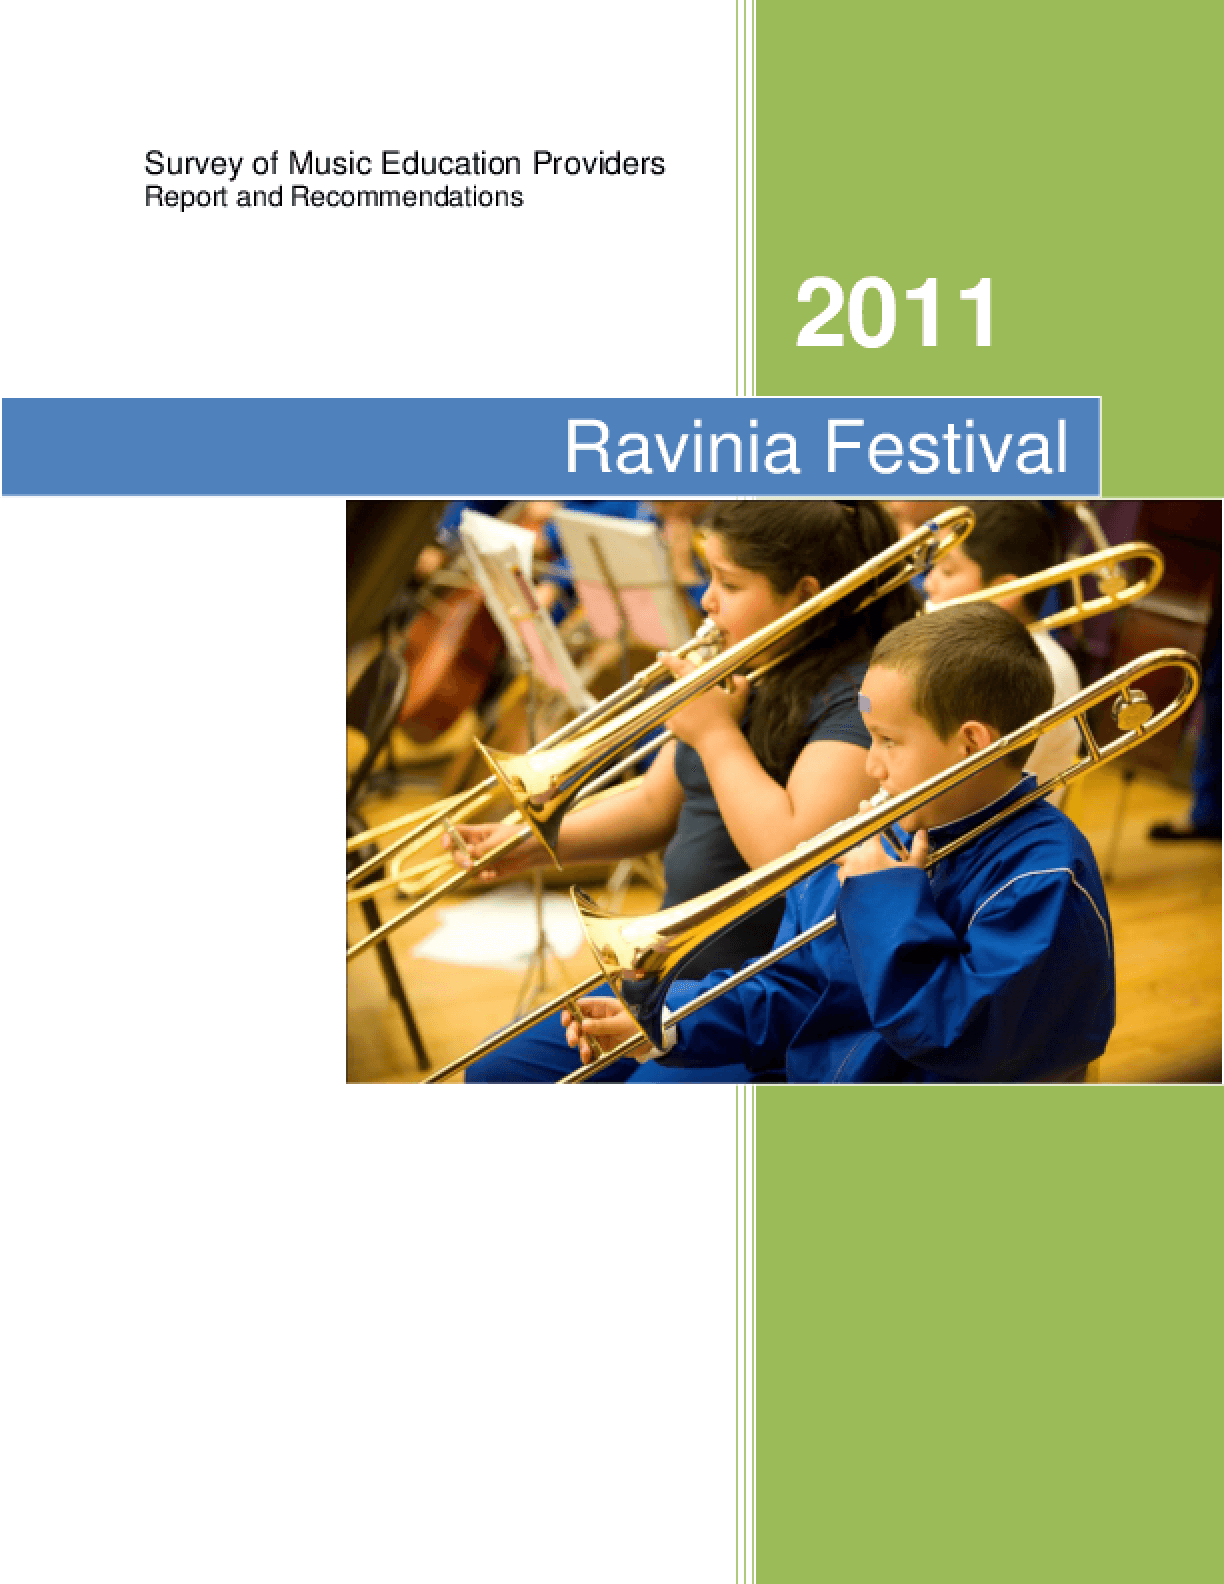 Survey of Music Education Providers: Report and Recommendations